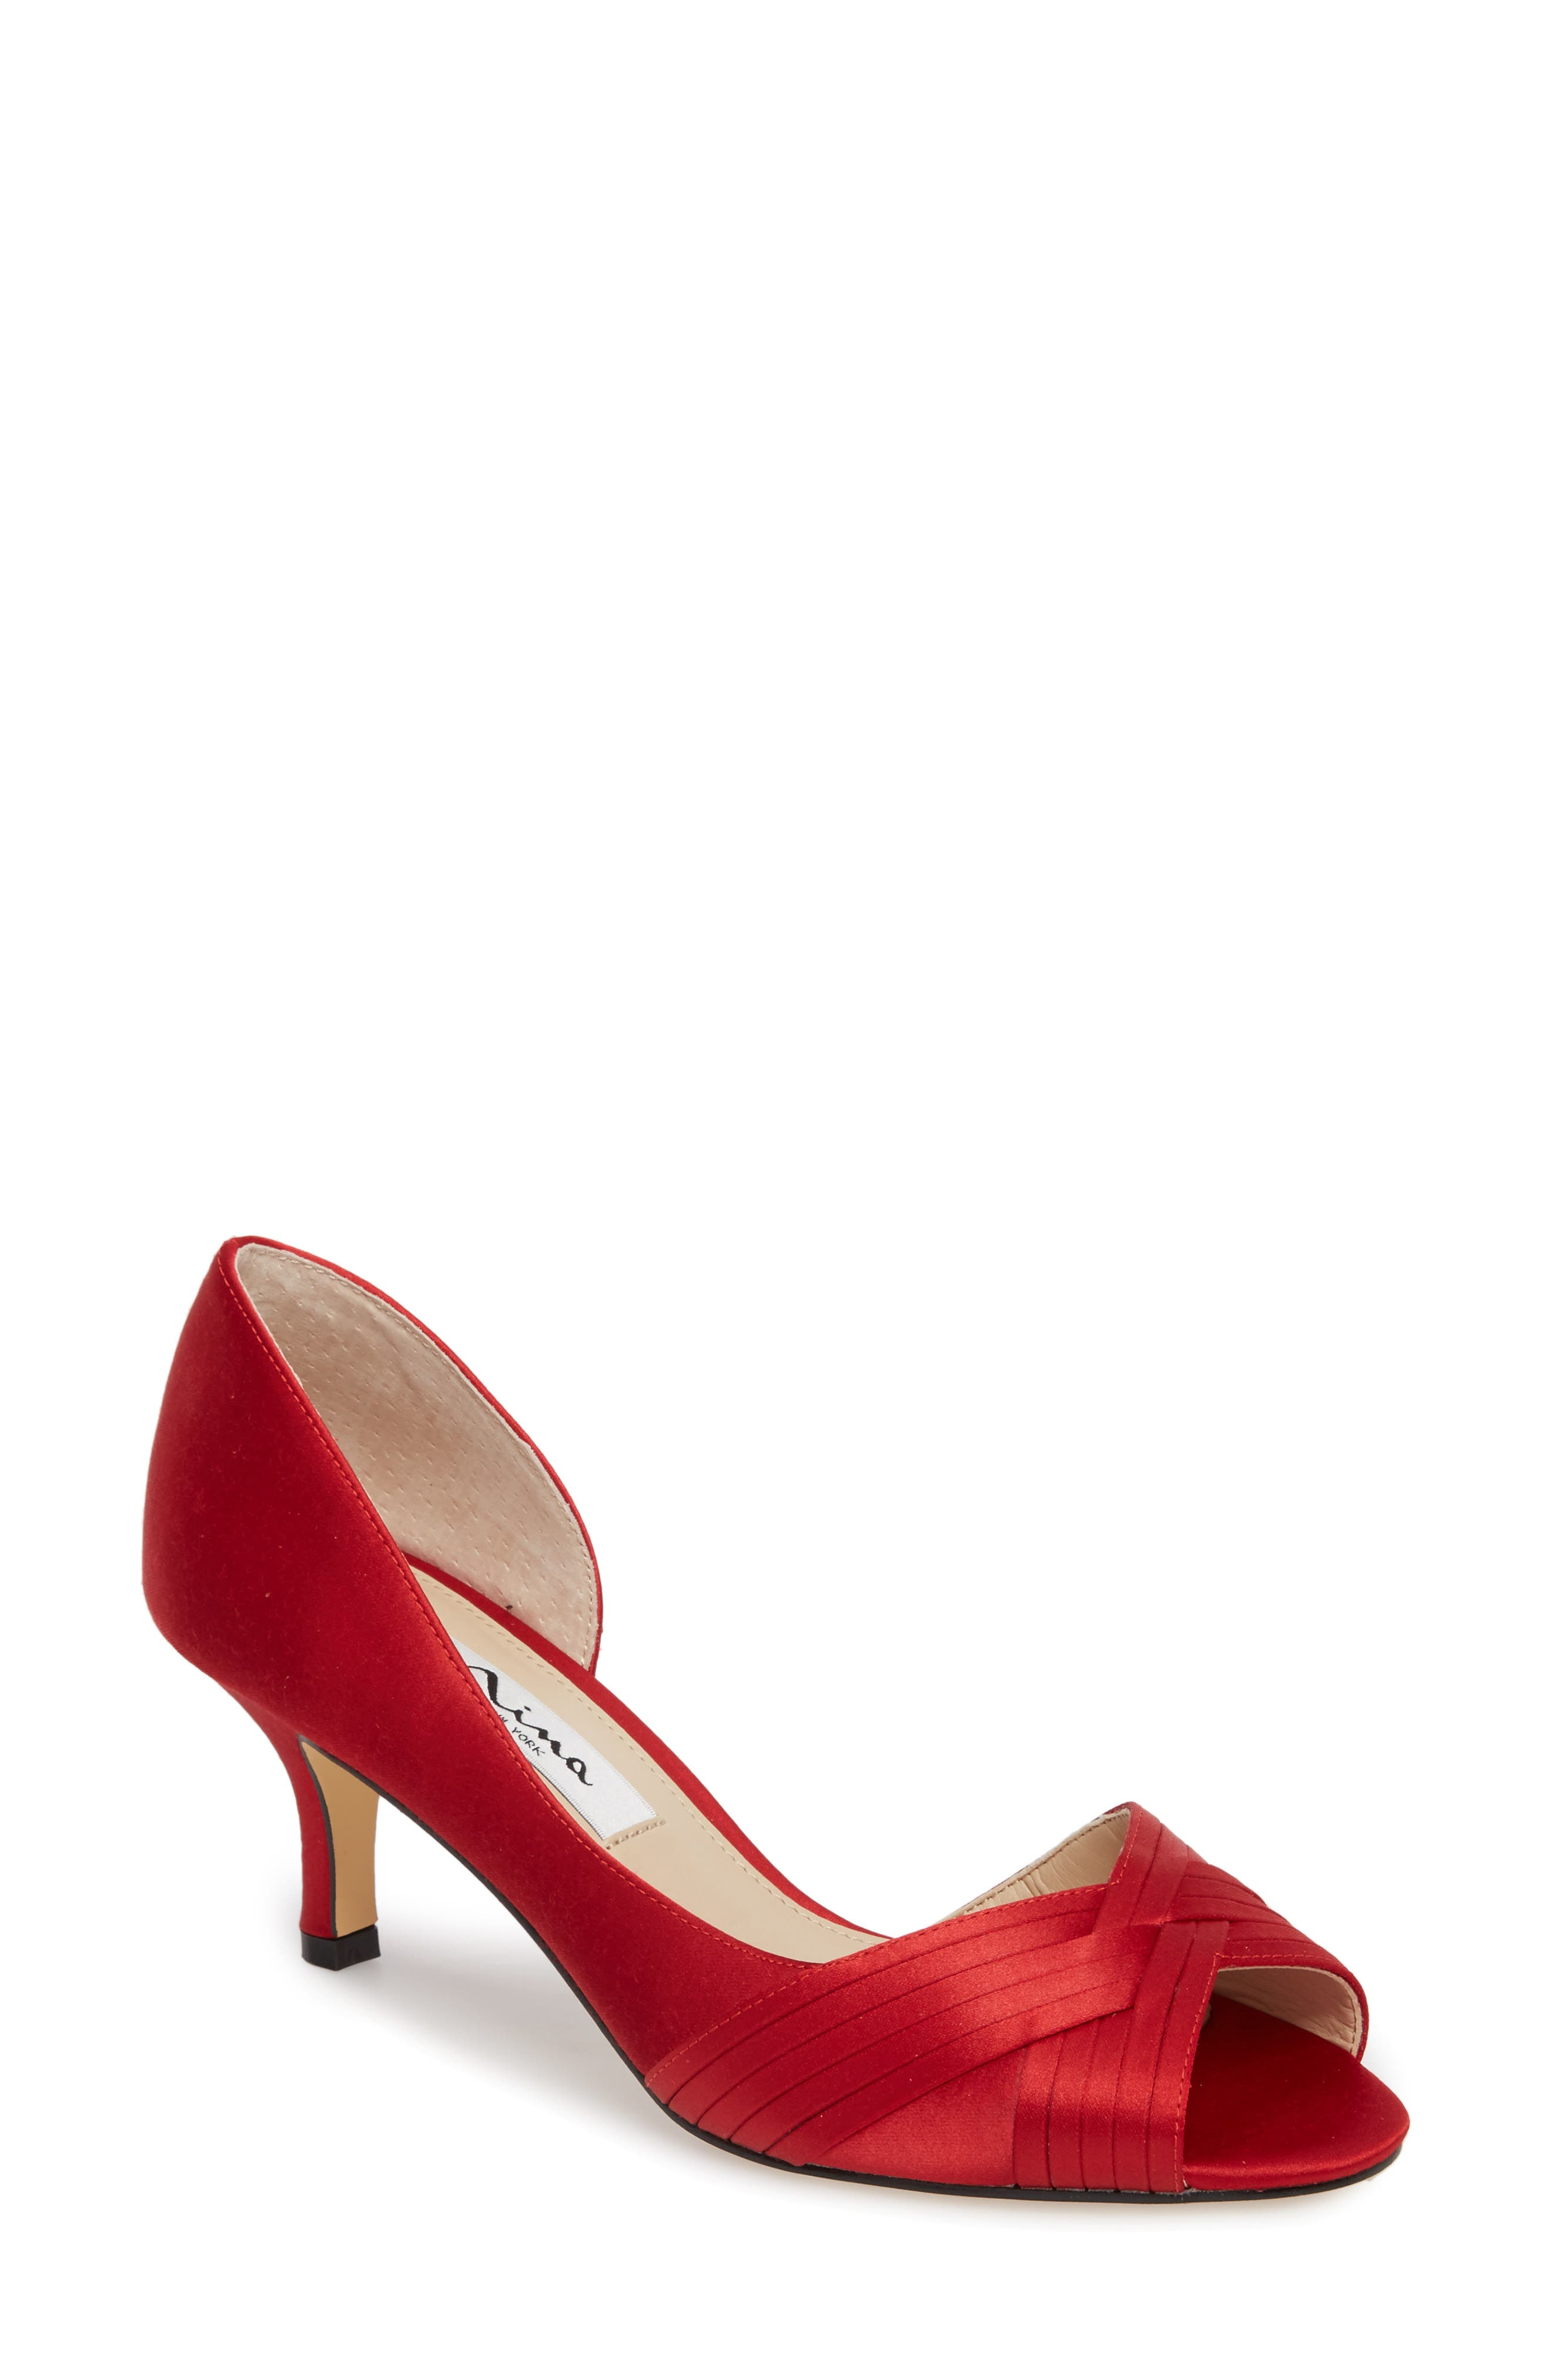 Contesa Open Toe Pump,                             Main thumbnail 1, color,                             RED SATIN